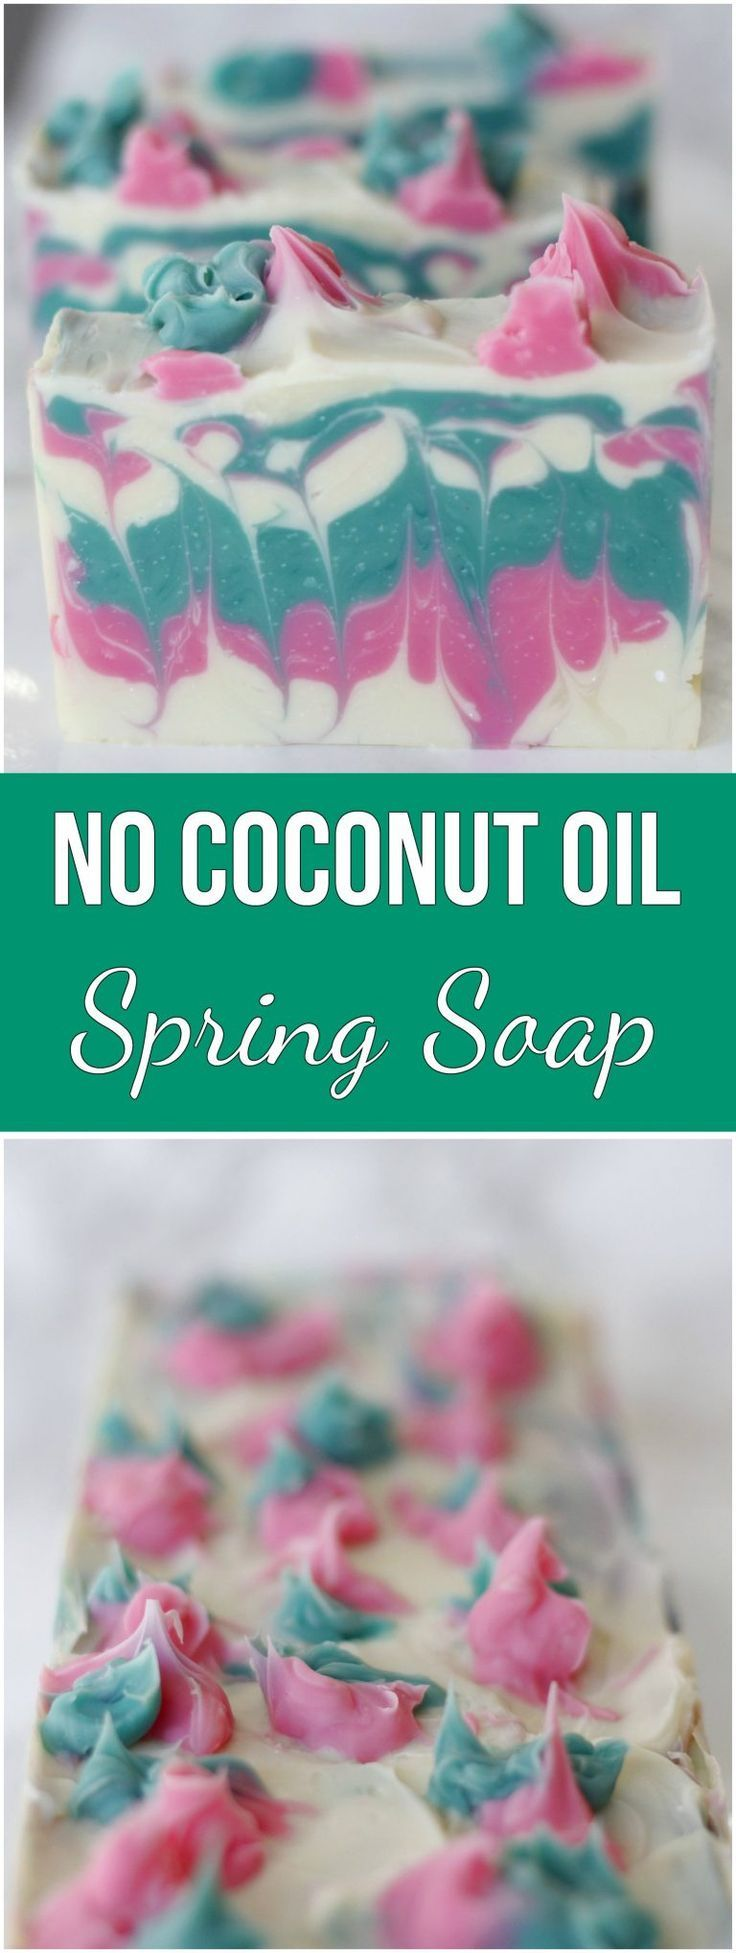 Splendid Spring Soap (Coconut Oil Free Soap) -